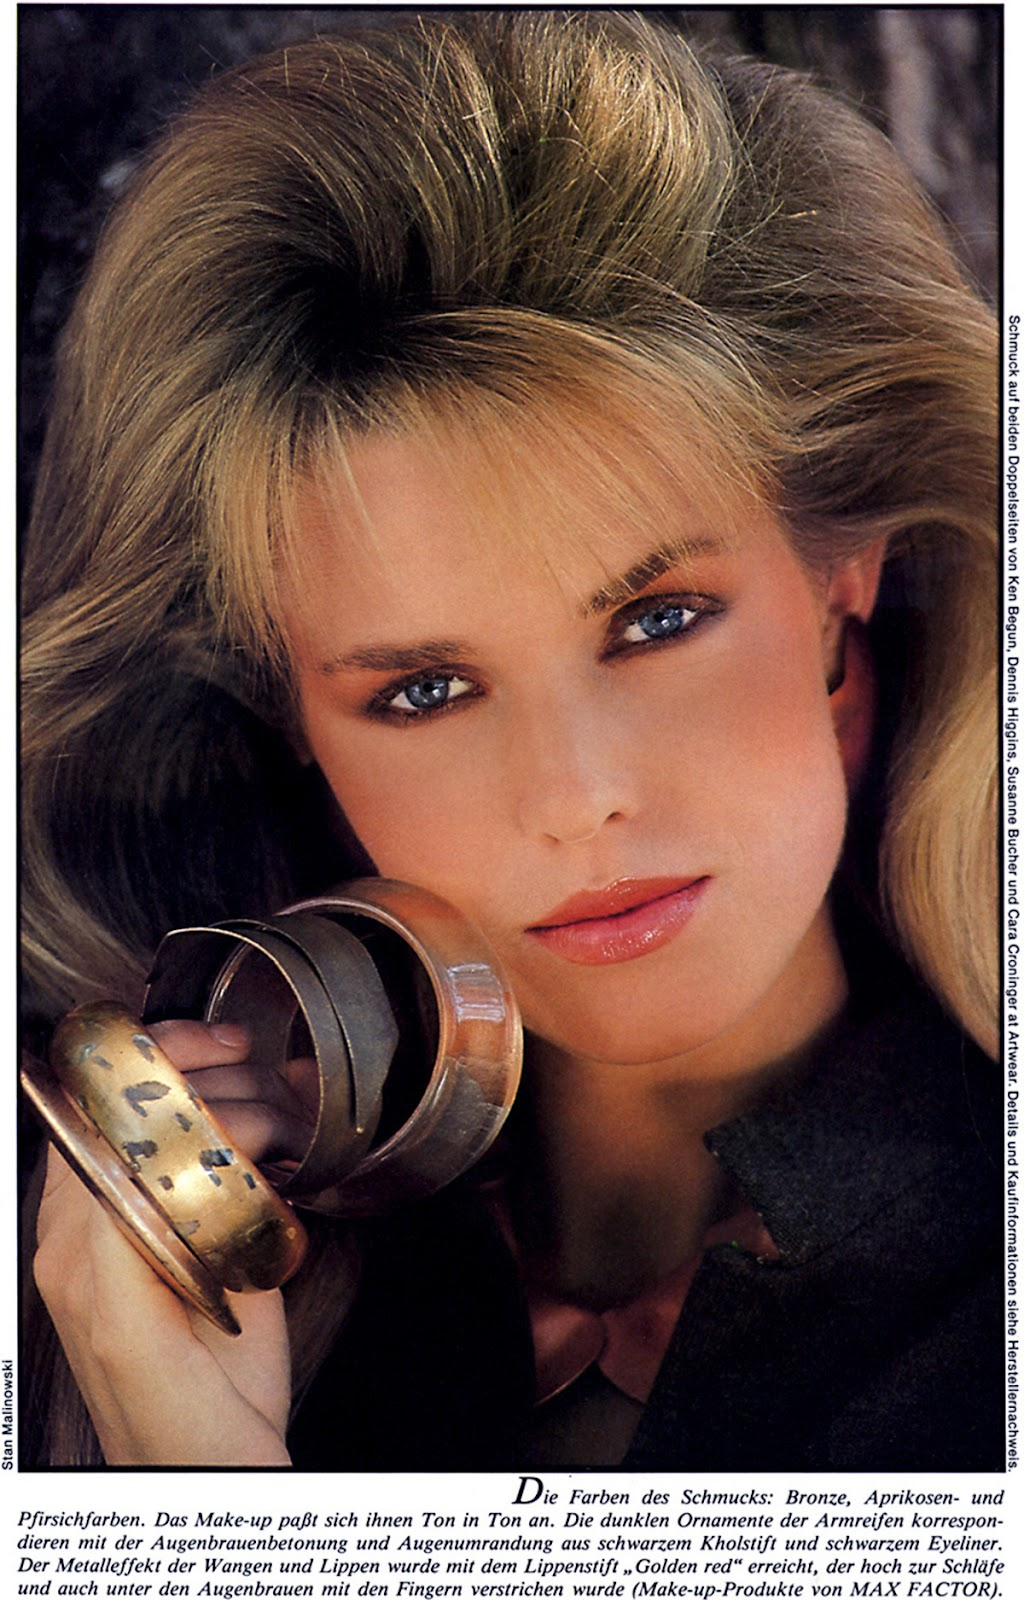 Yolanda Foster Early Modeling Pictures | Rachael Edwards